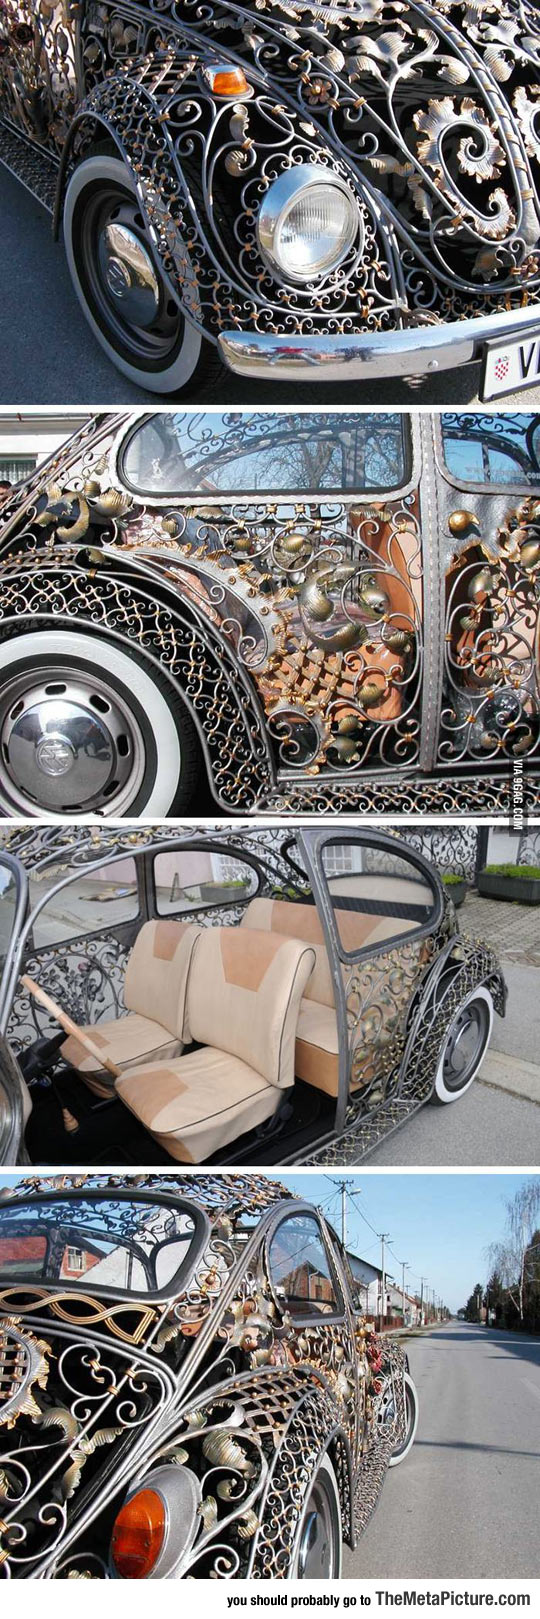 Awesome Bug Body From A Croatian Metalwork Shop